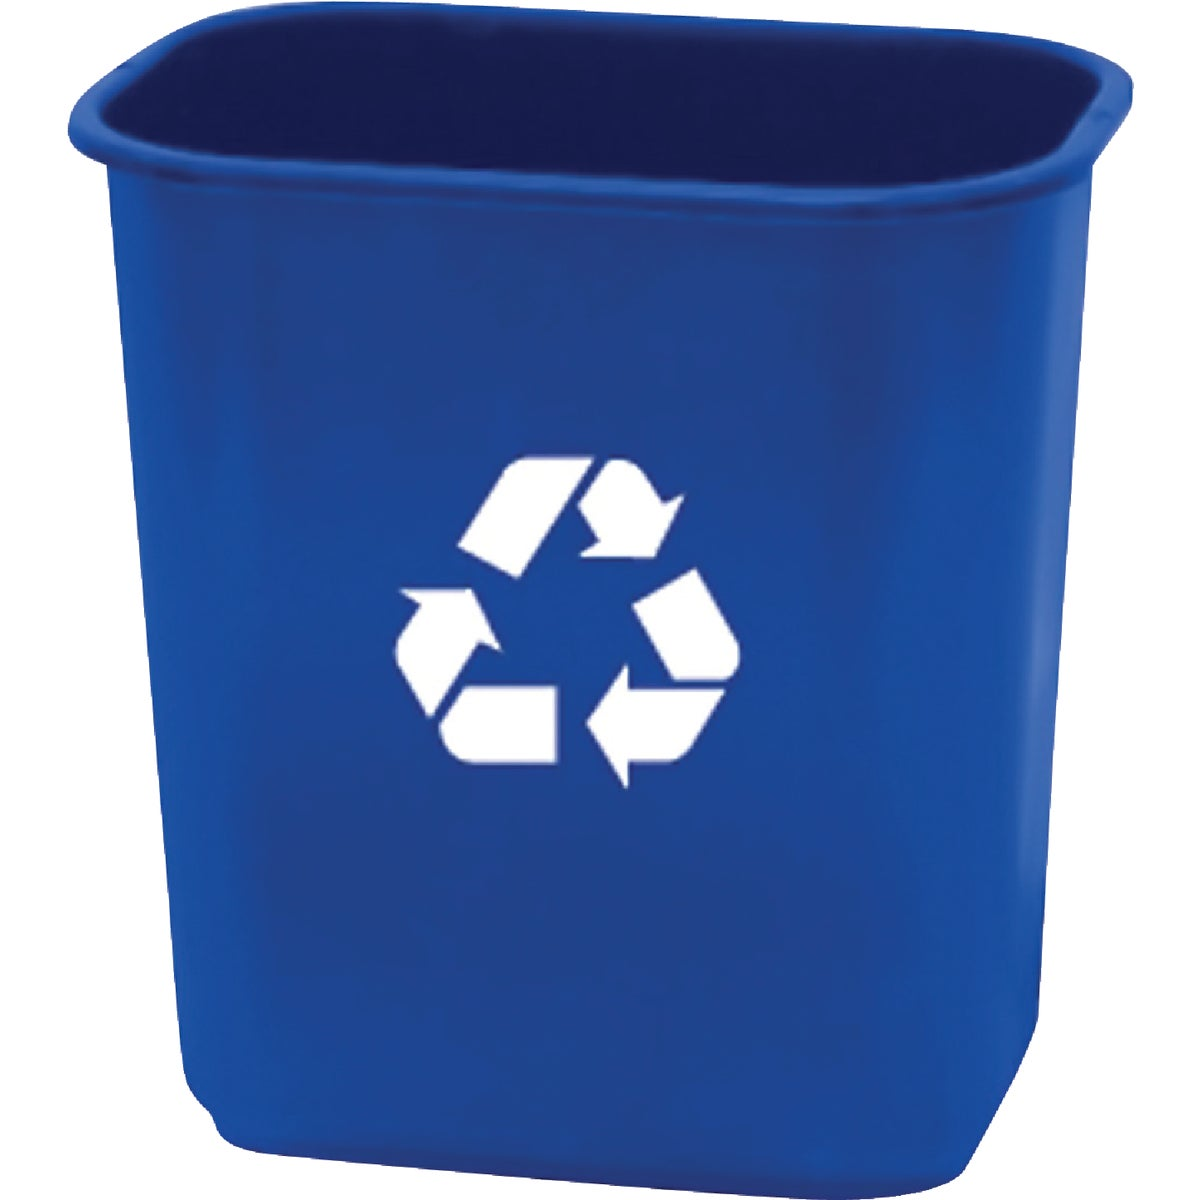 28QT RECYCLE WASTEBASKET - WB0084/12 by United Solutions